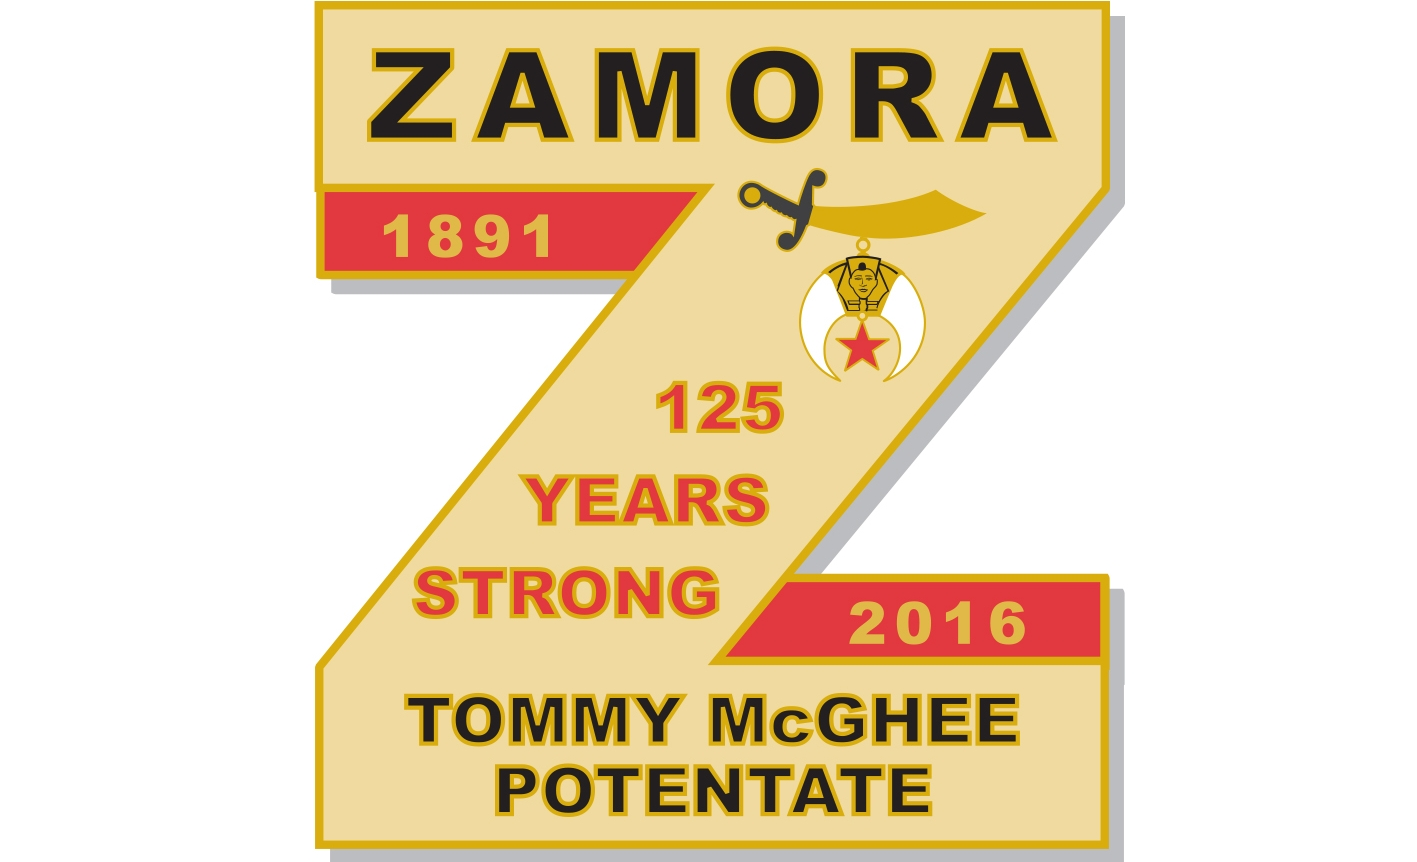 2016 Zamora Potentate Pin.jpeg